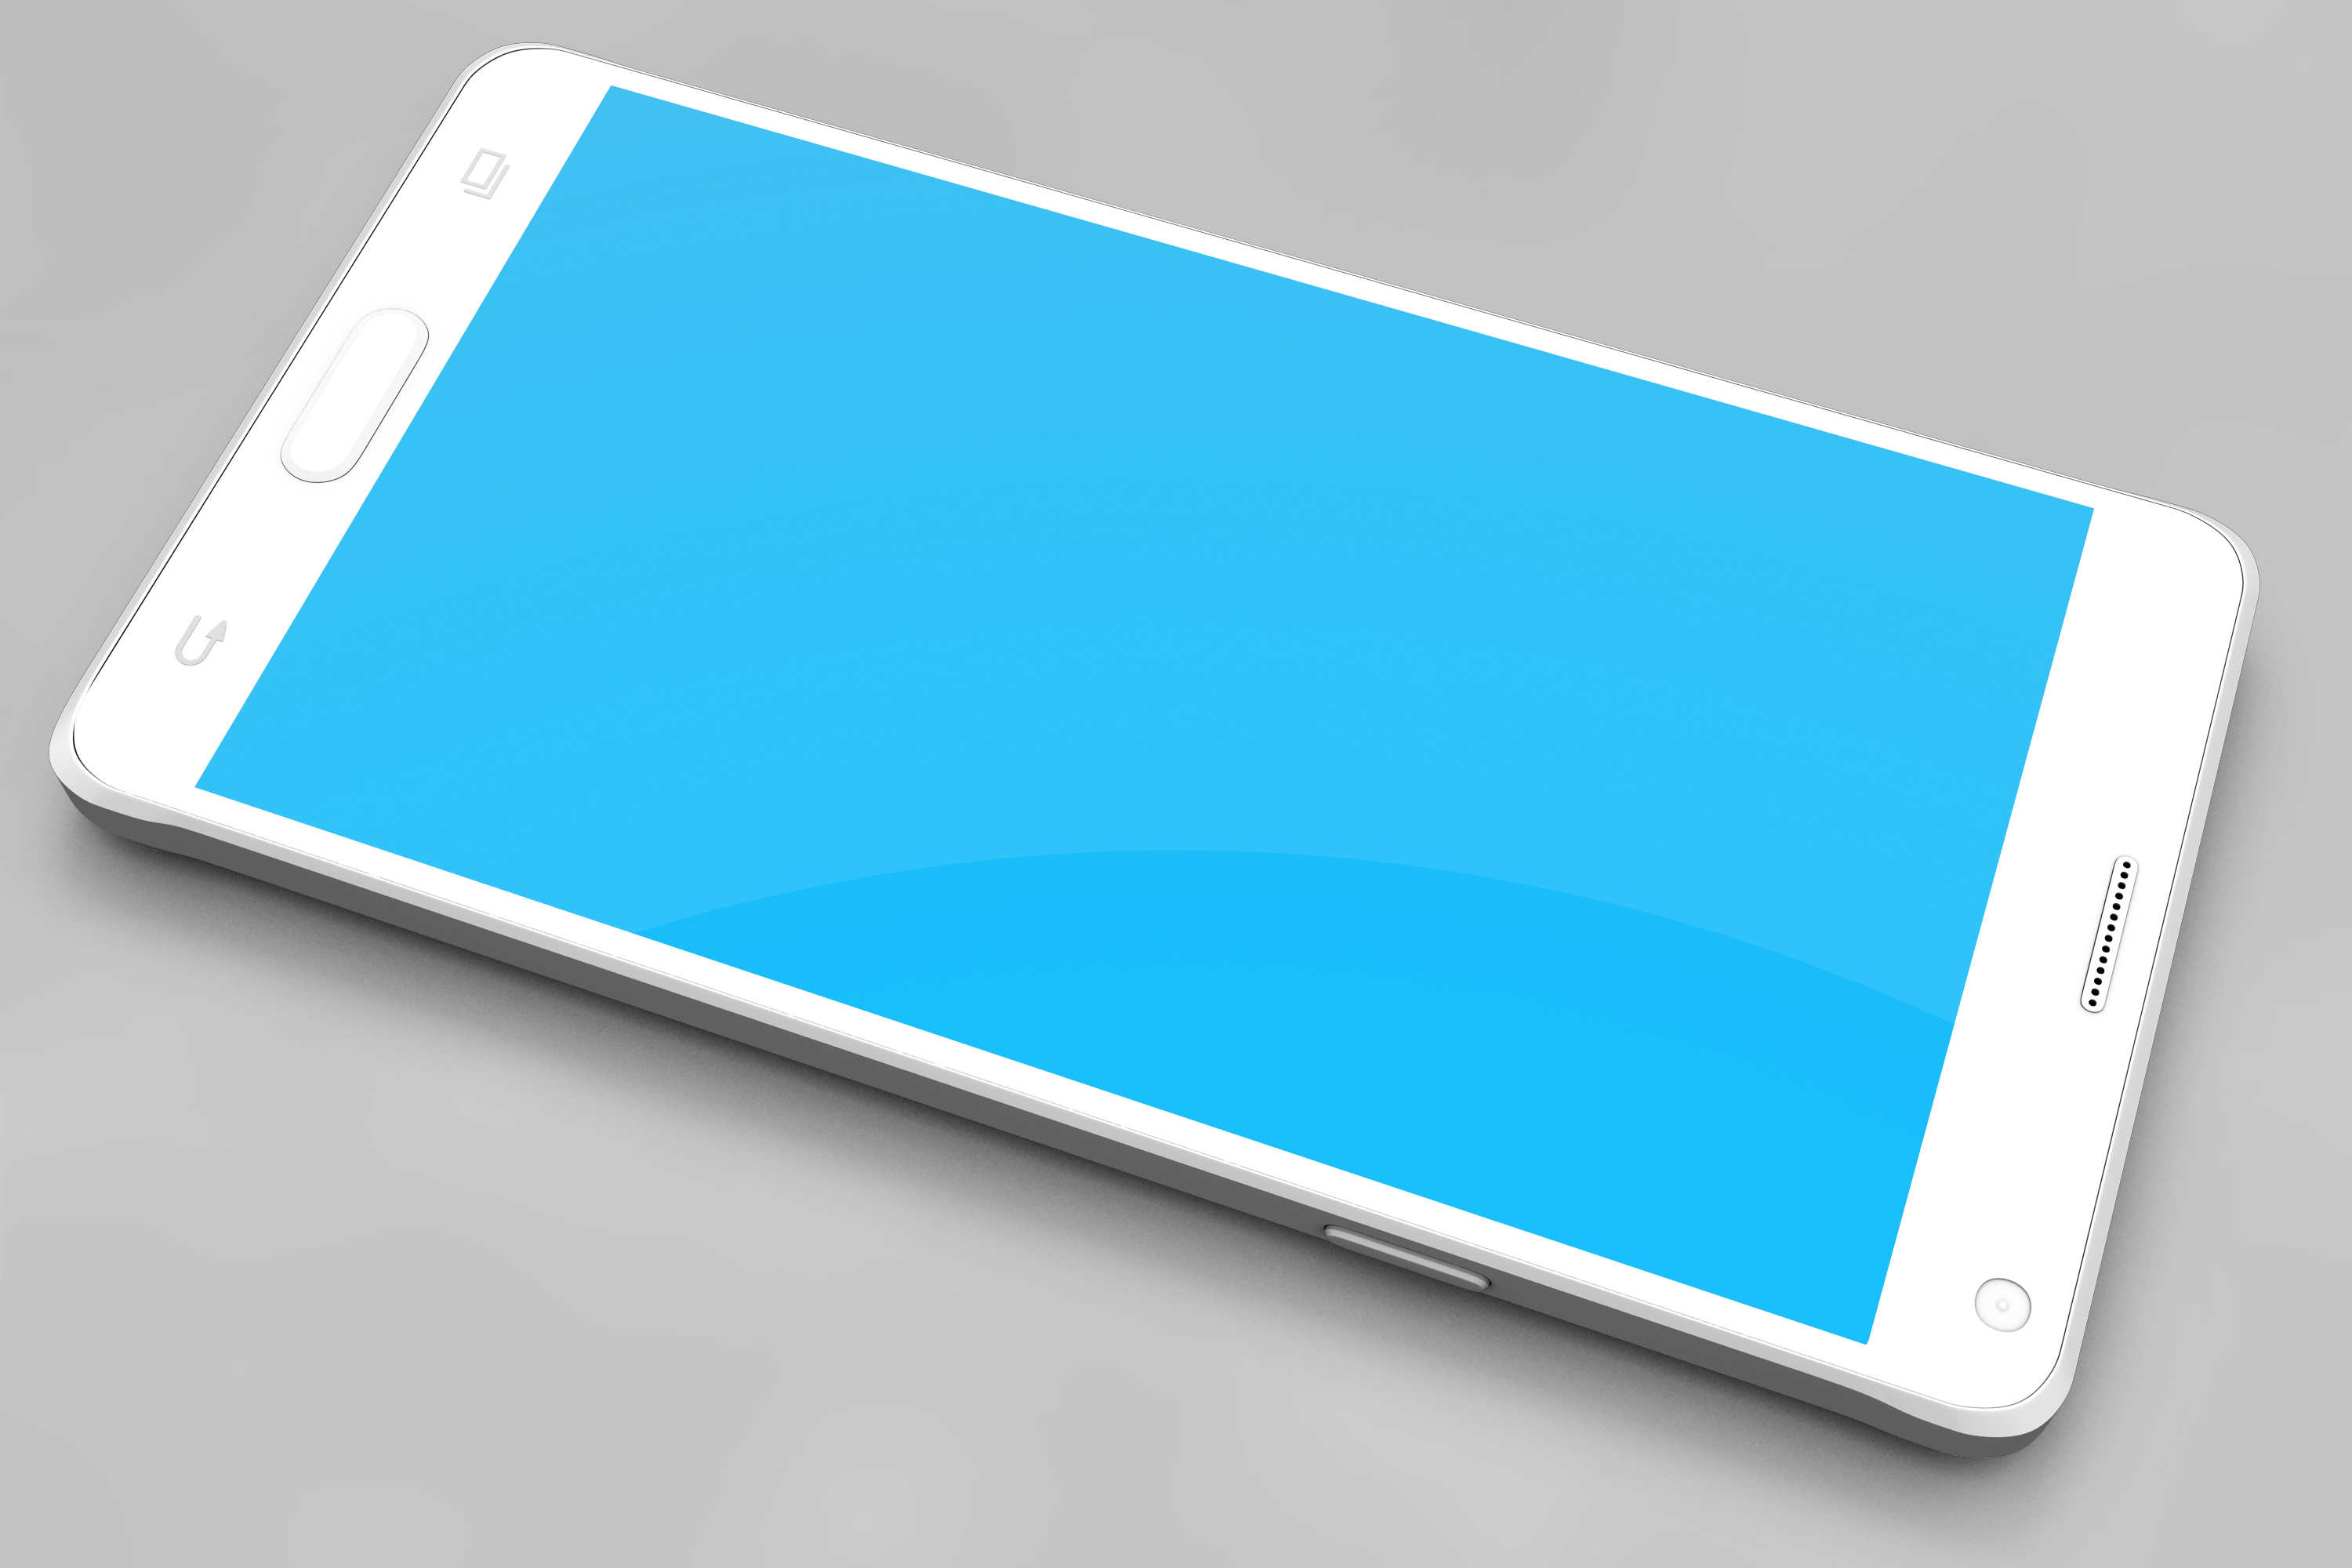 Samsung Galaxy Note 4 Mock-up example image 4